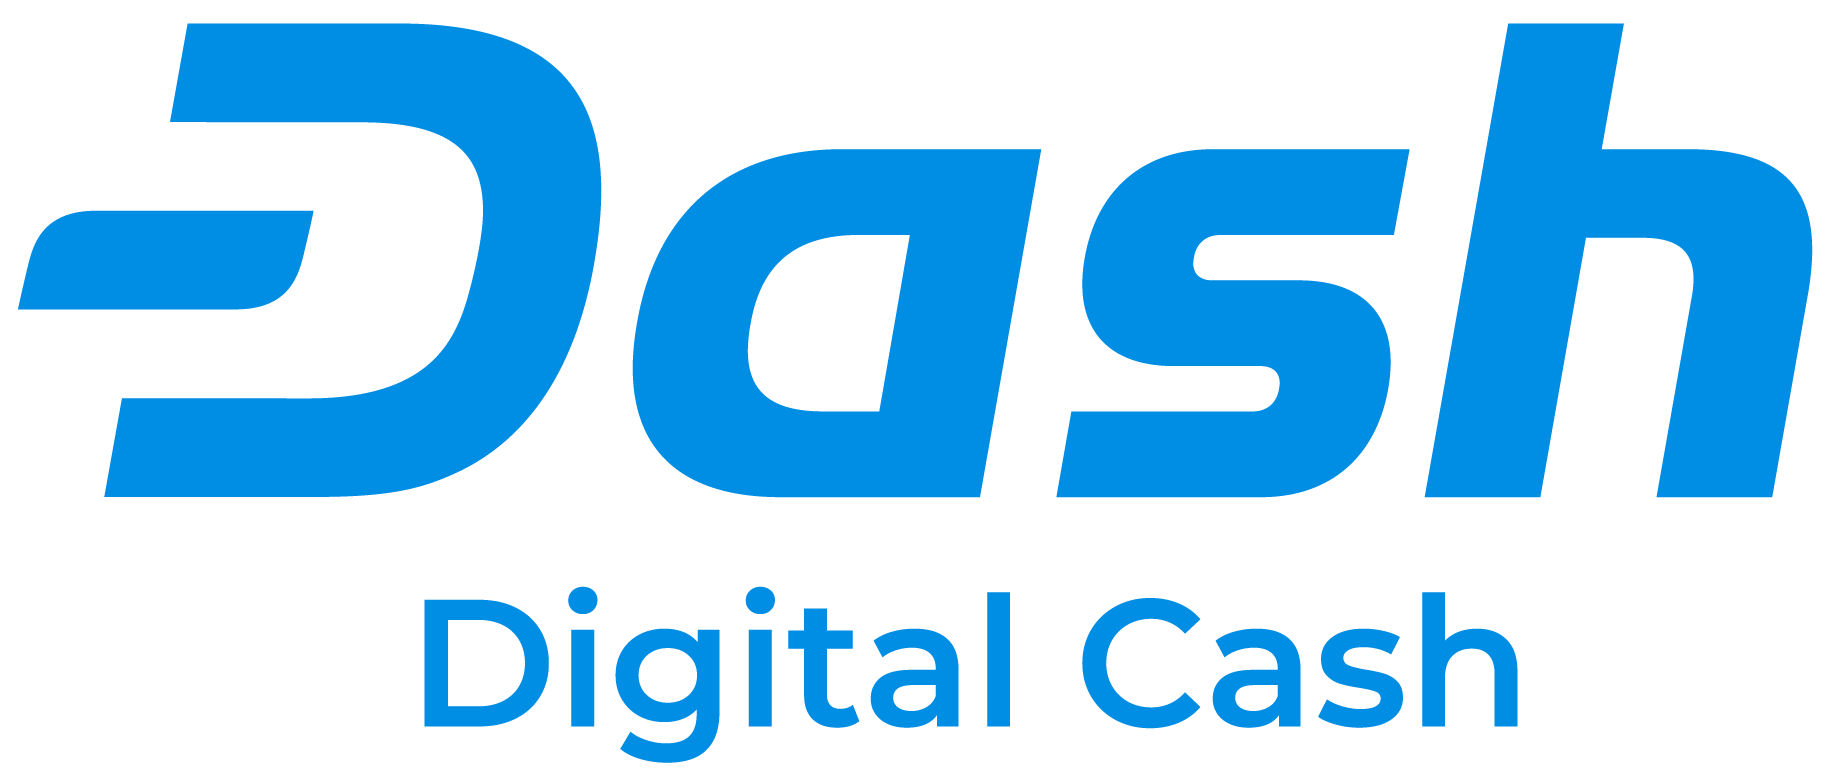 File:Dash digital.